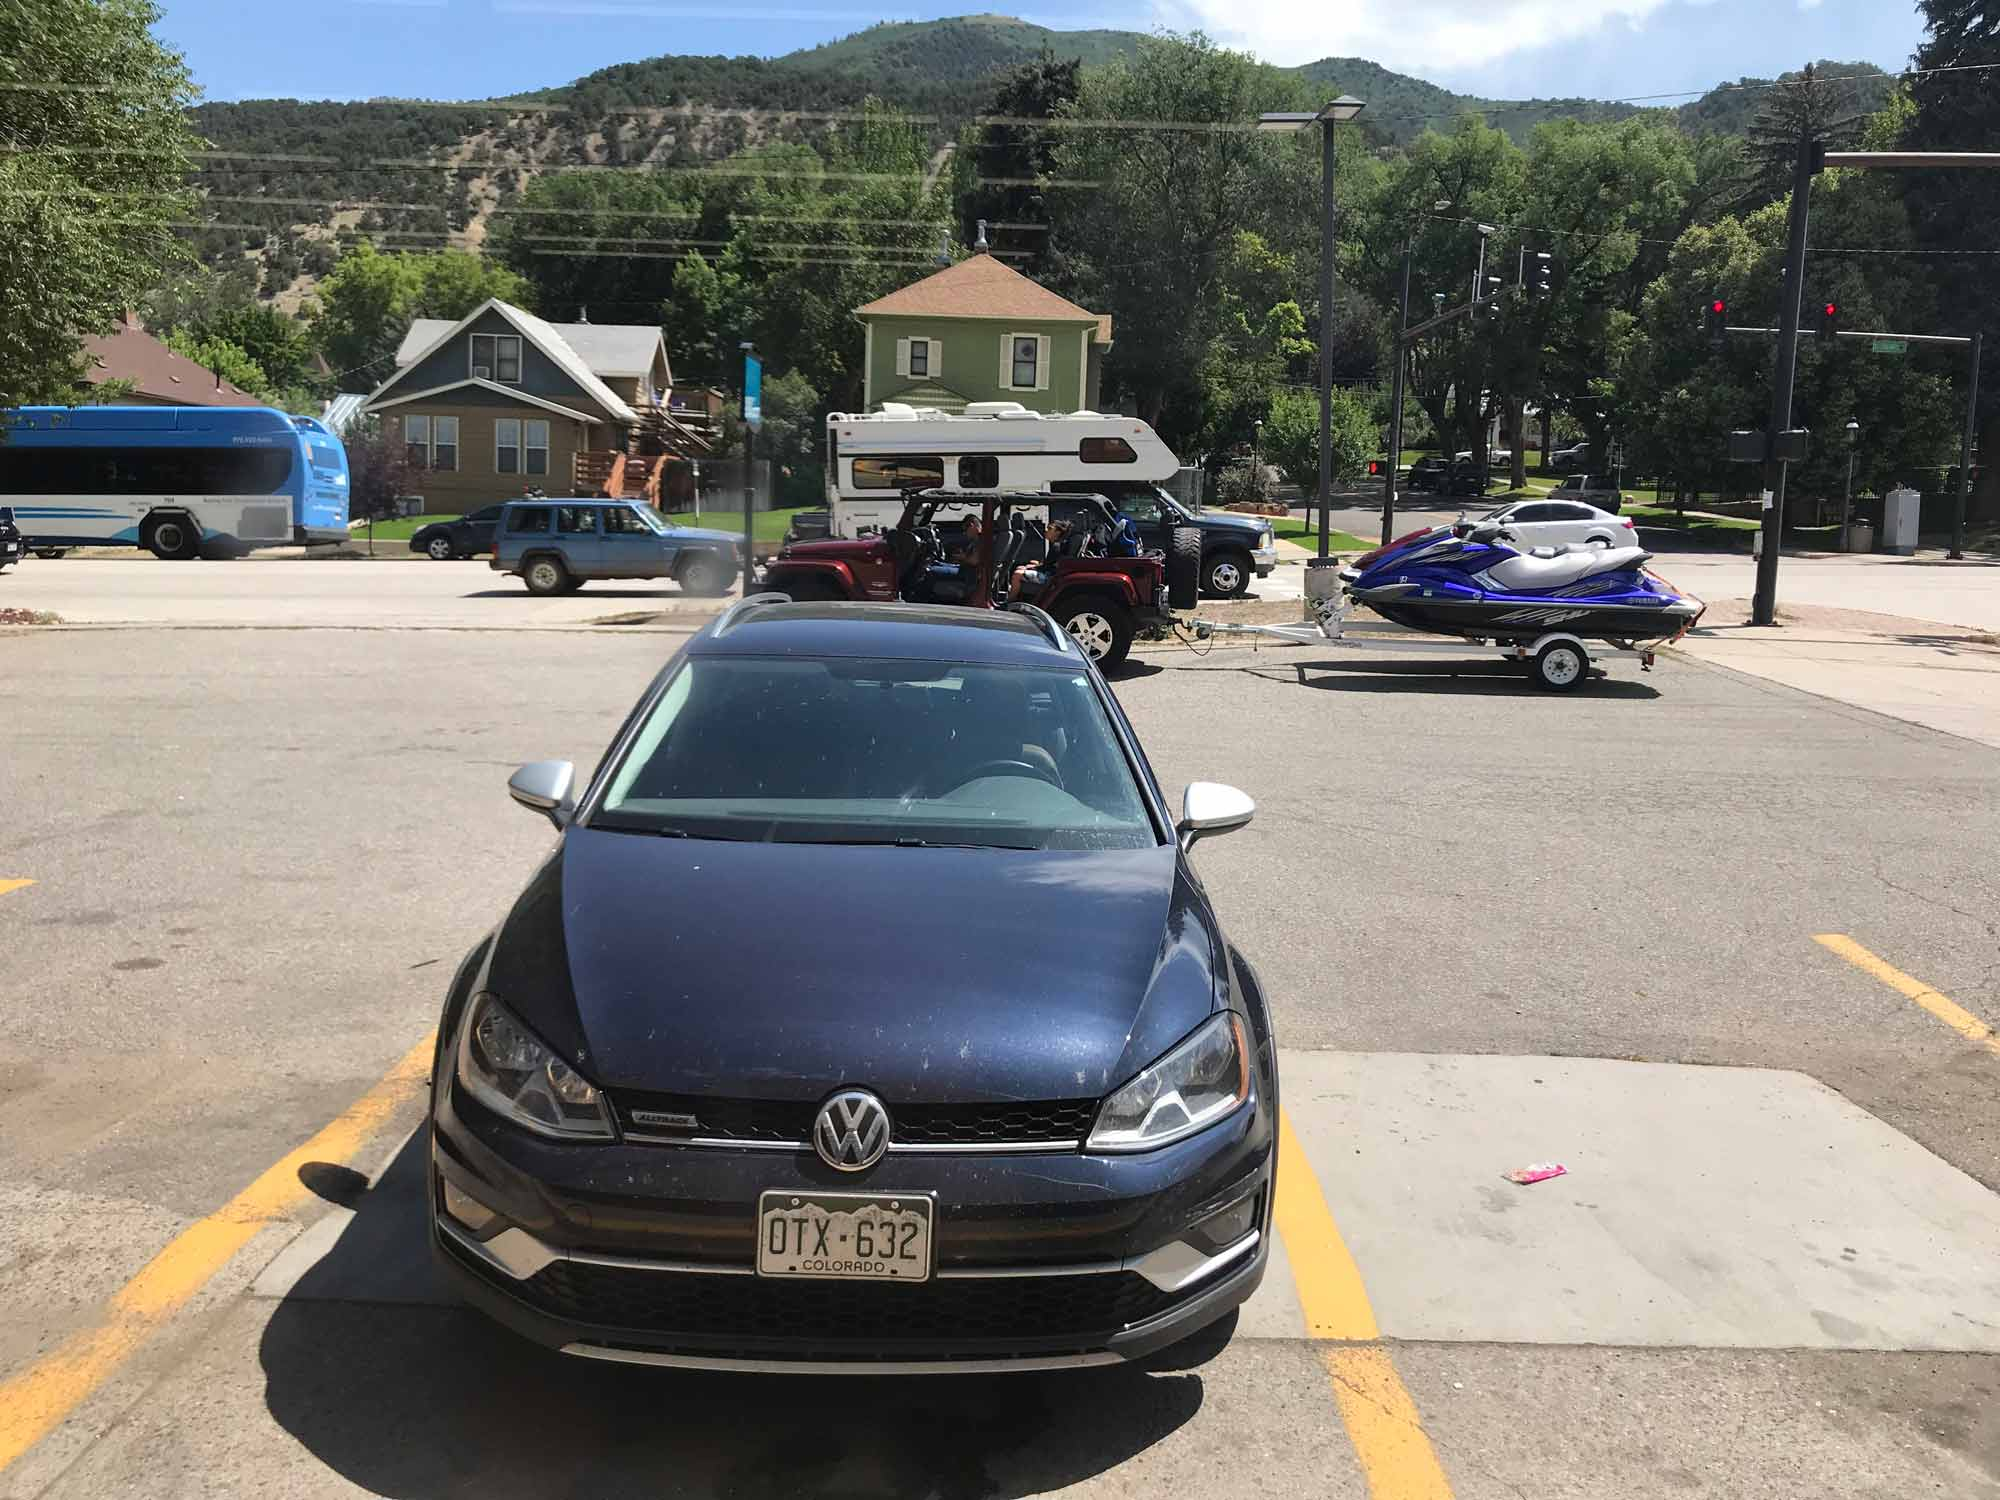 Glenwood Springs Colorado 5 - Highway MPG Report - Golf Alltrack - Mountain Twisties